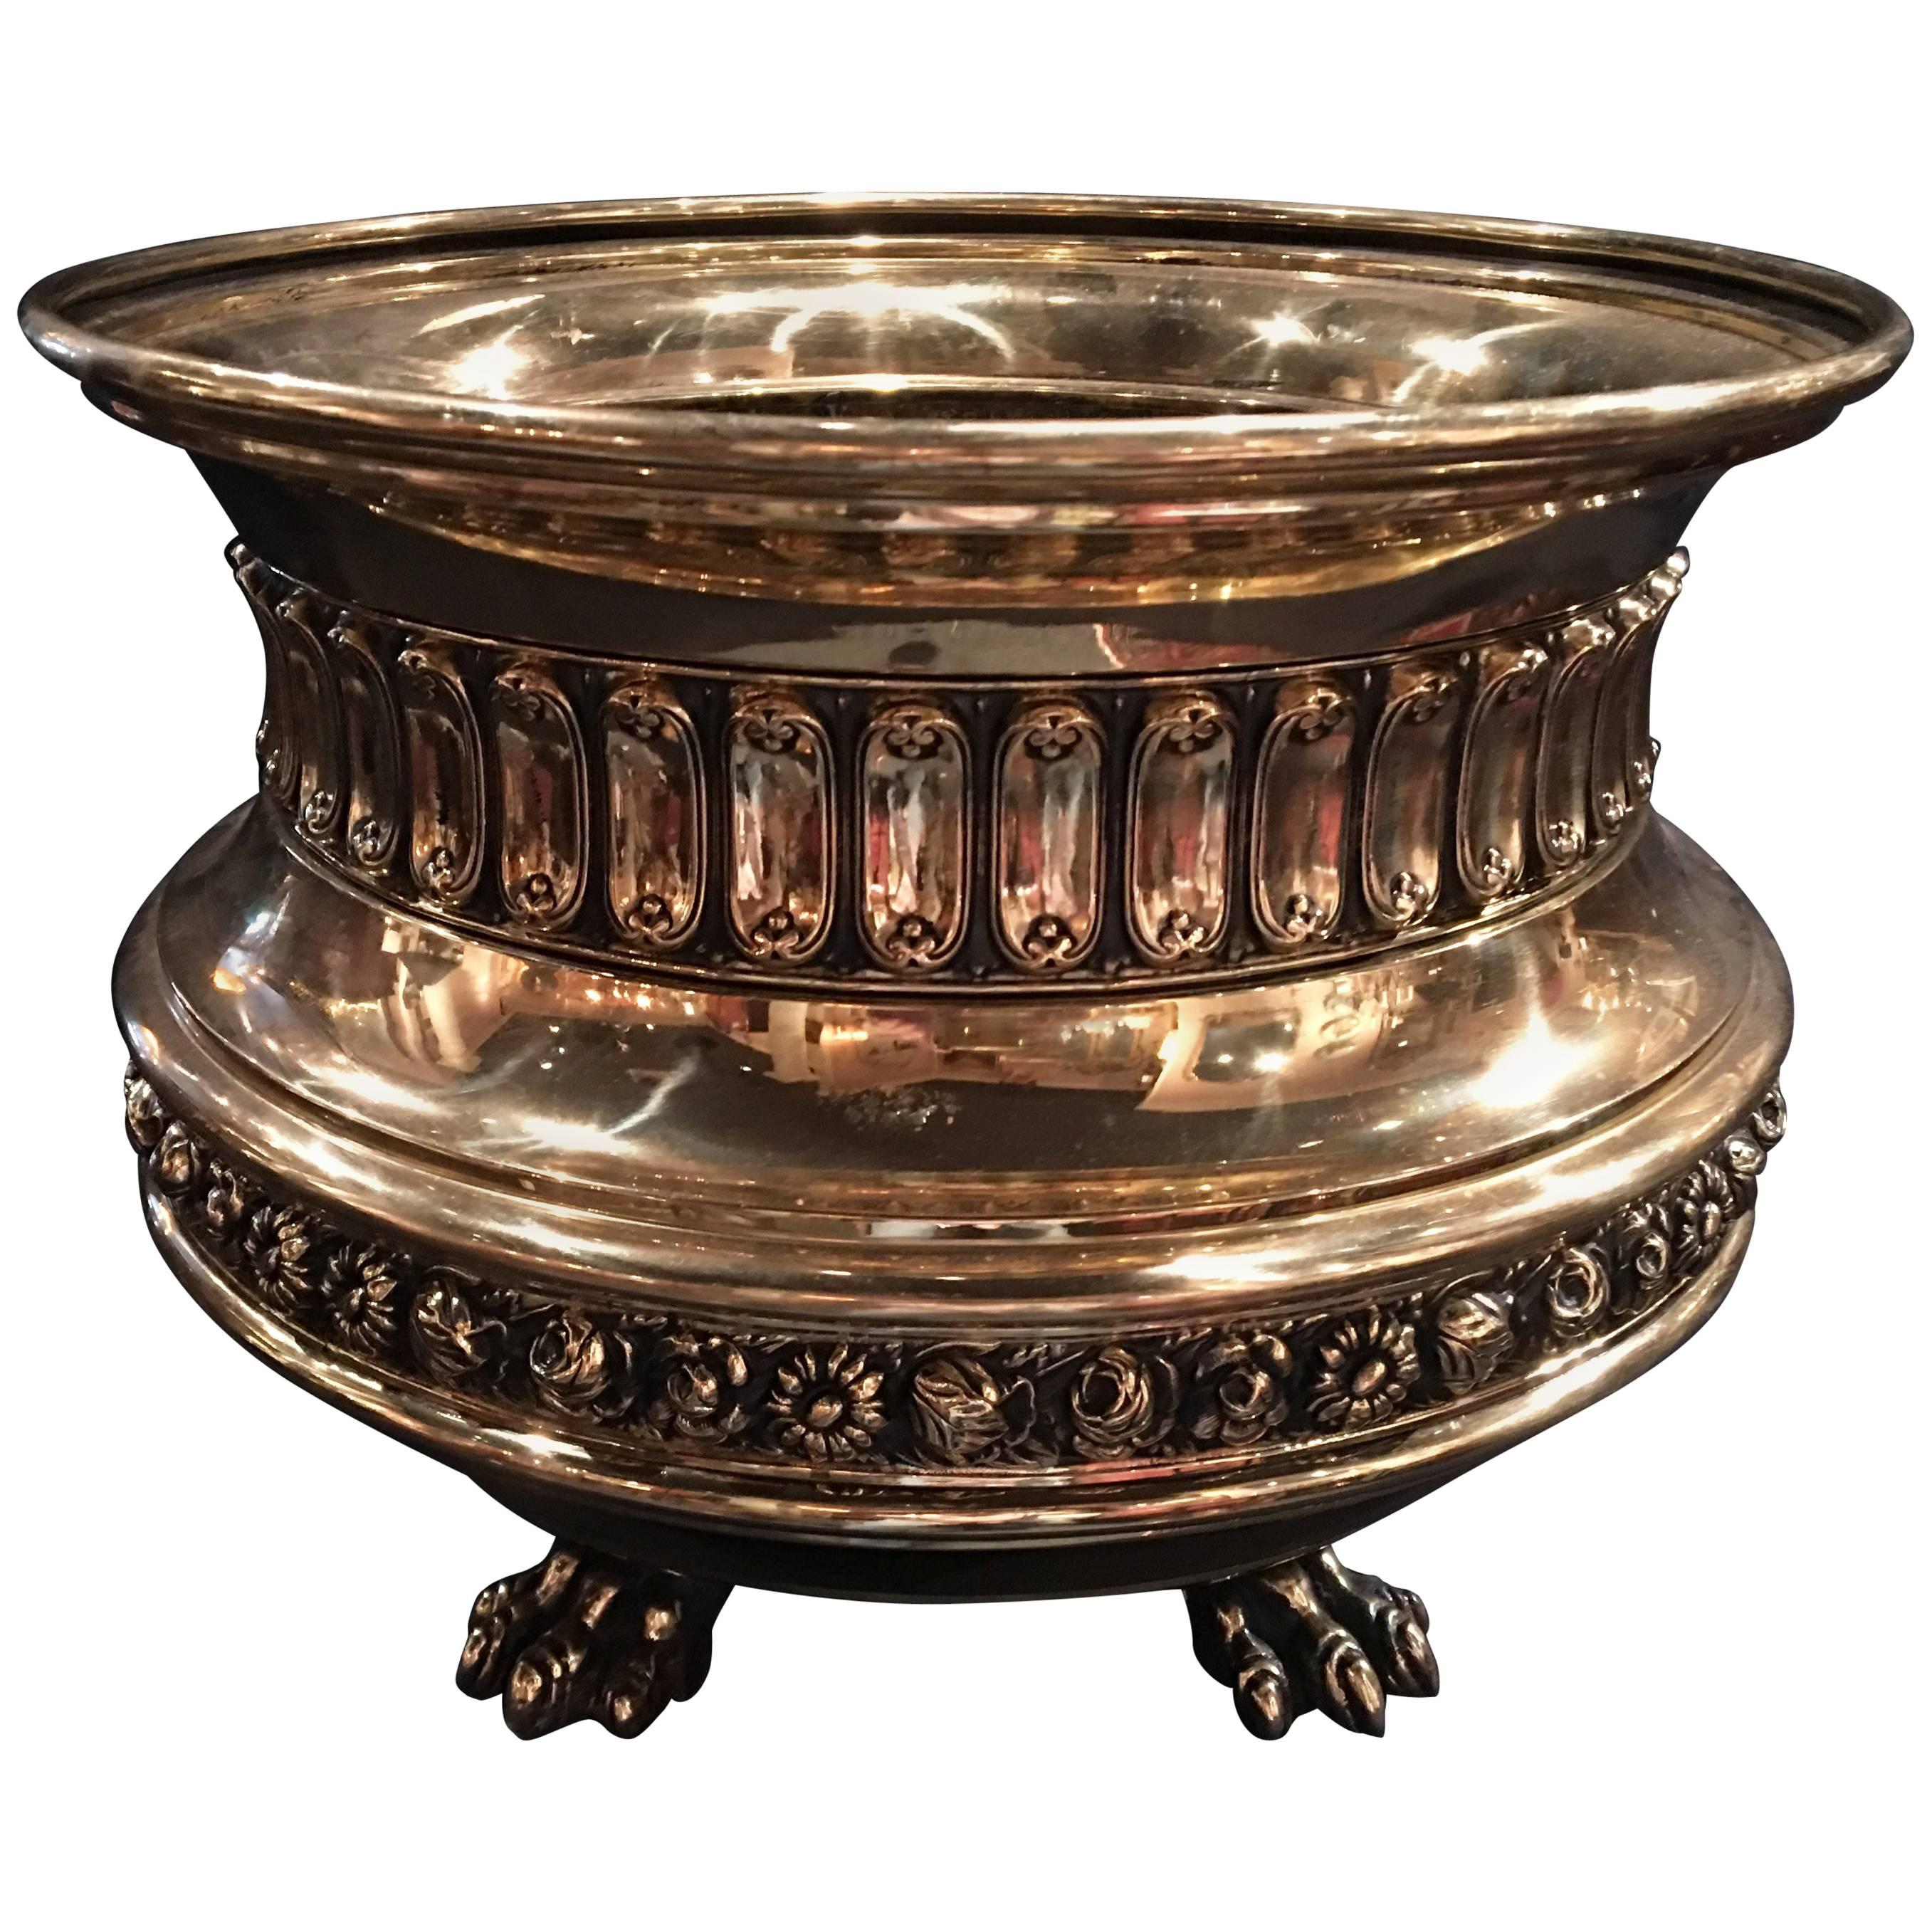 French Polished Brass Jardinière or Planter, 19th Century